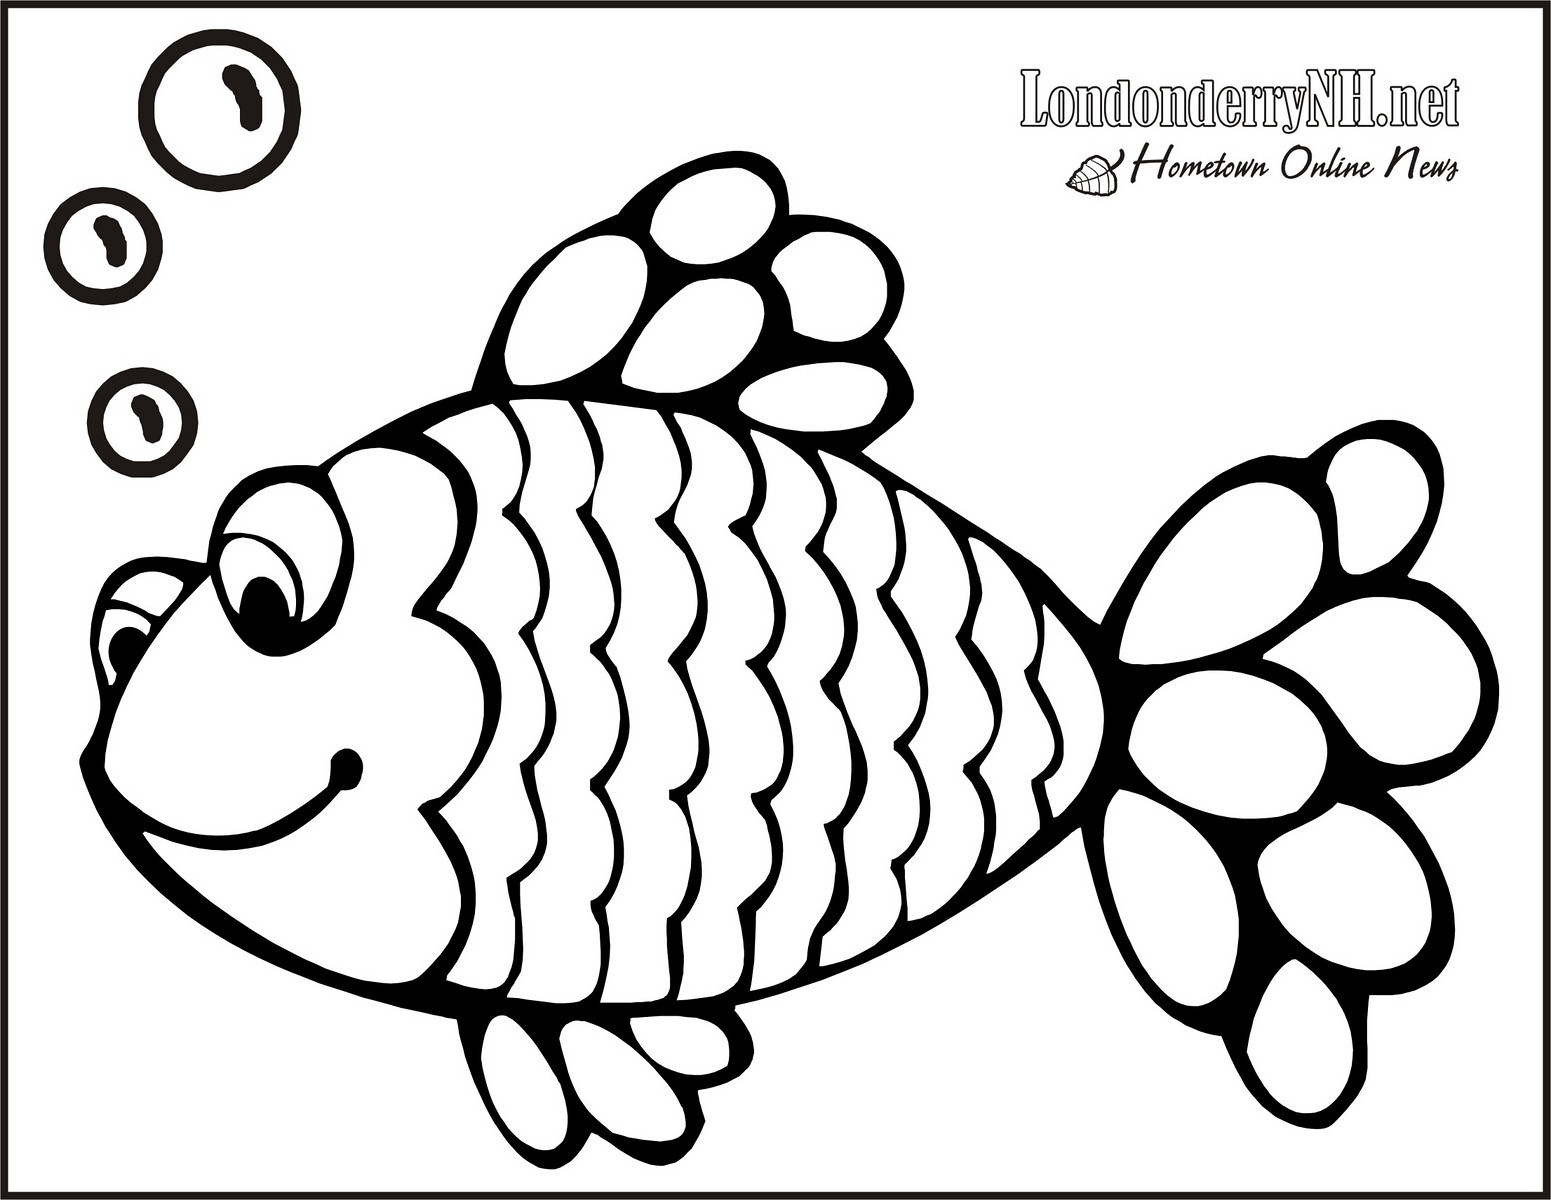 large fish coloring page awesome big head cartoon fish coloring page sheet fish page large fish coloring